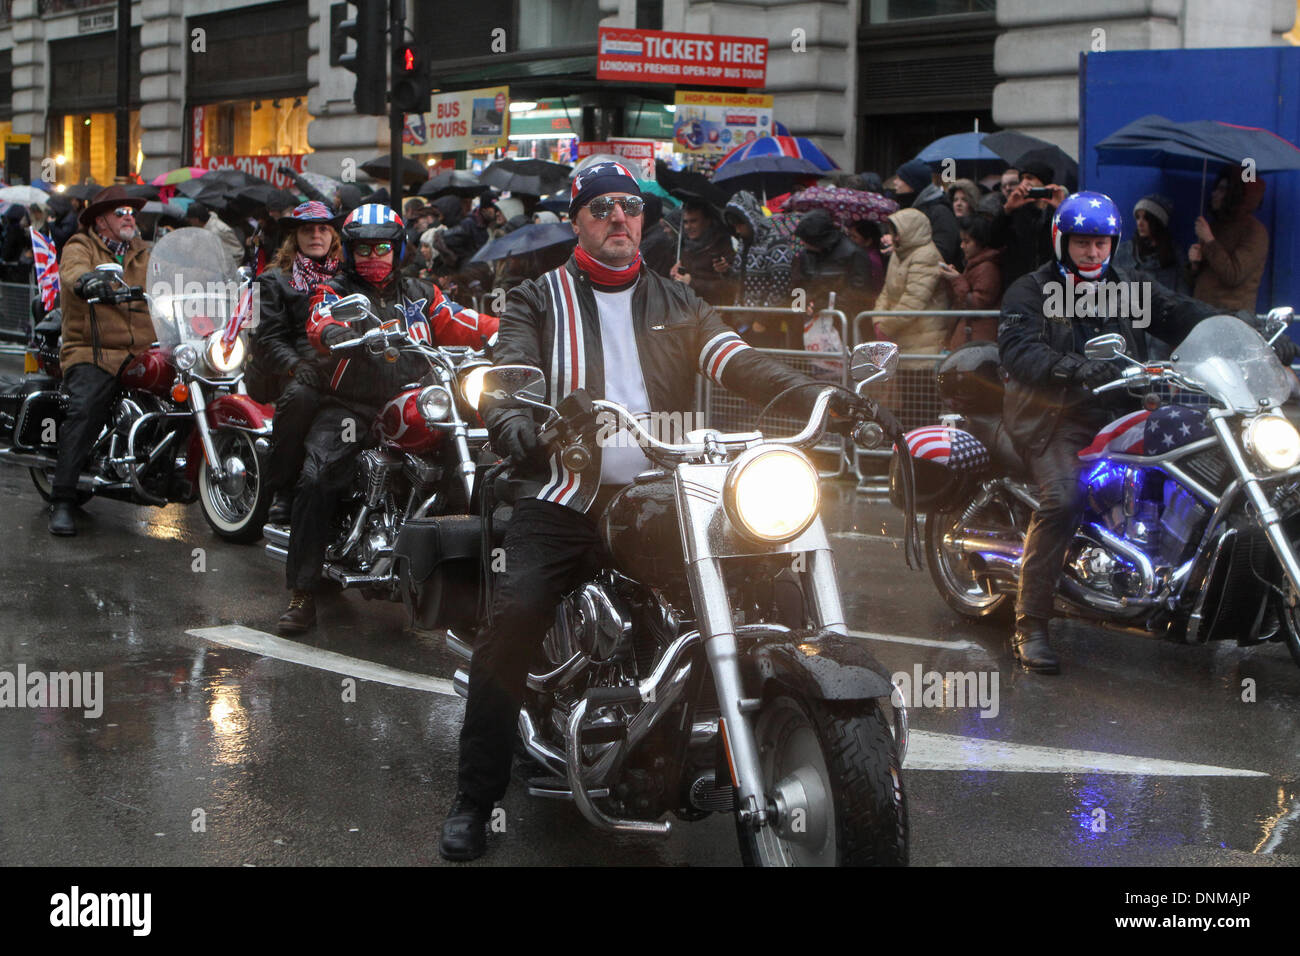 London,UK,1st January 2014,Motorbikes take part in the London's New Year's Day Parade 2014 Credit: Keith Larby/Alamy Stock Photo